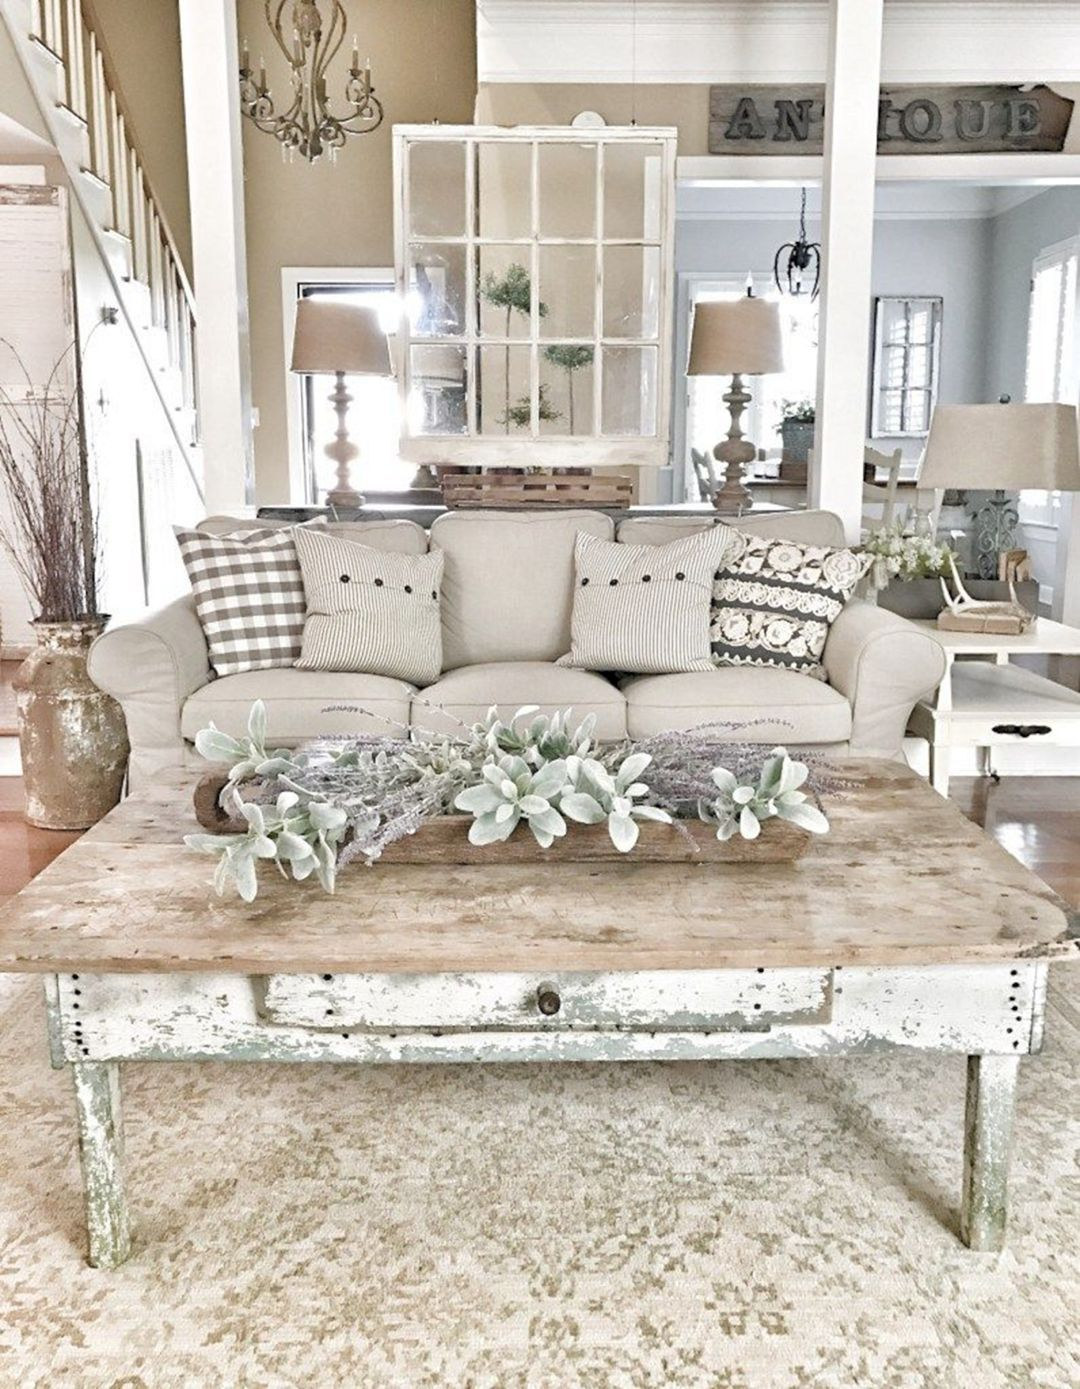 25 Awesome Shabby Chic Apartment Living Room Design And